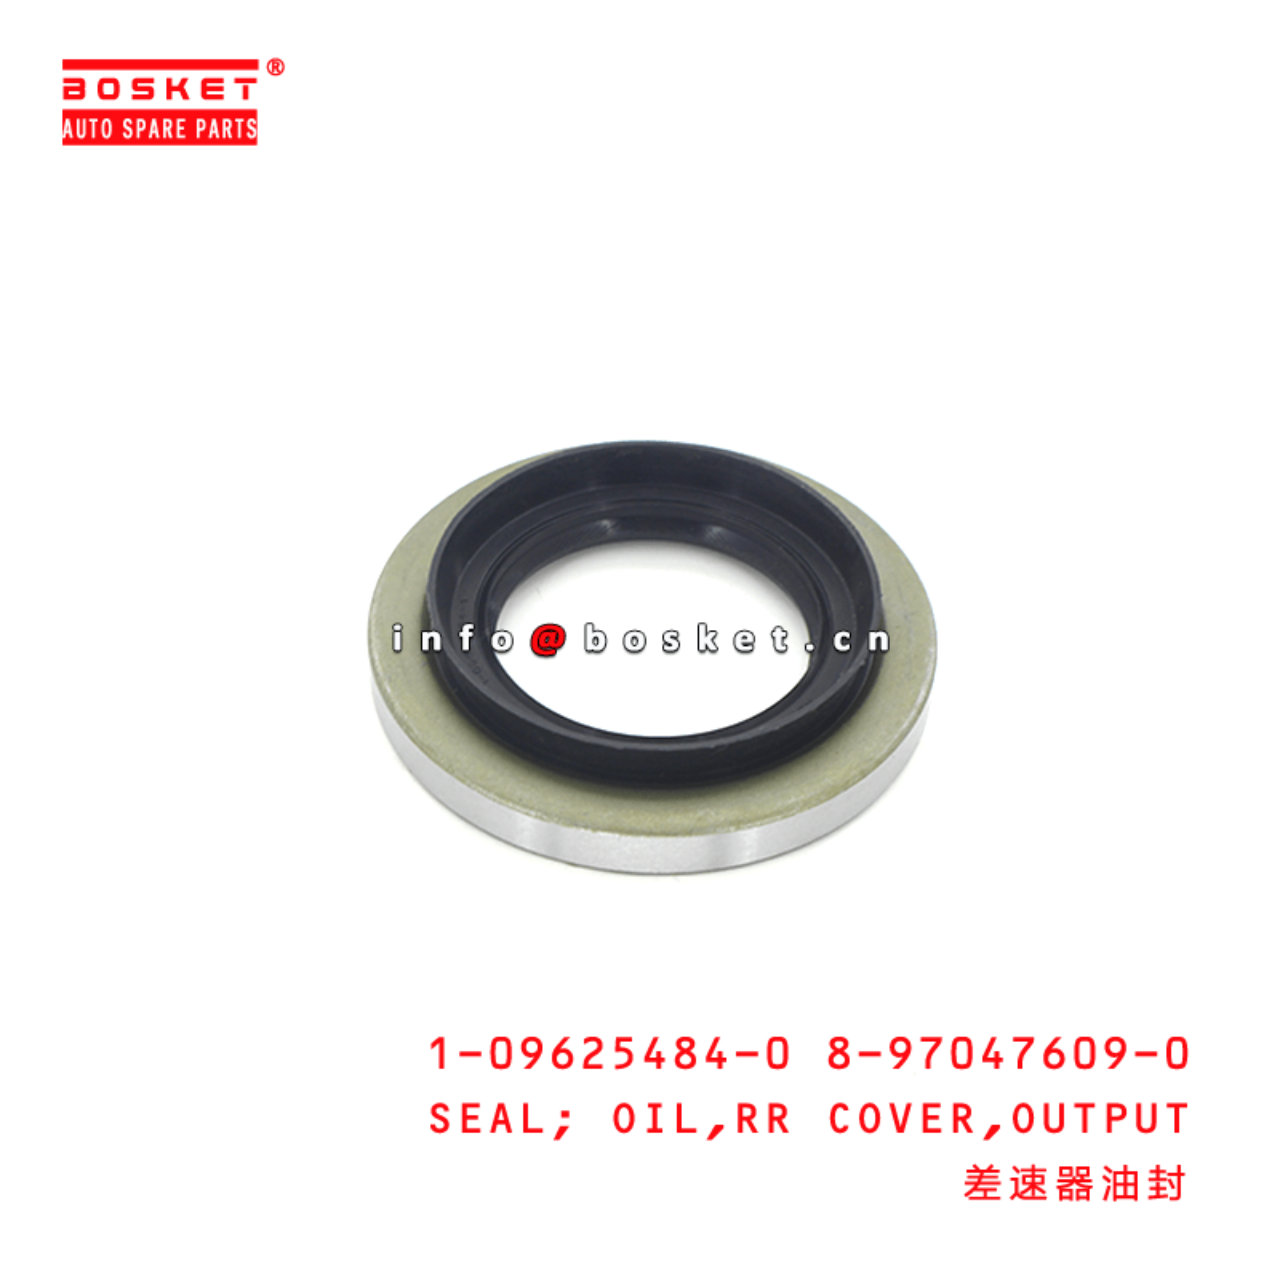 1-09625484-0 8-97047609-0 Output Rear Cover Oil Seal 1096254840 8970476090 Suitable for ISUZU ELF 4H